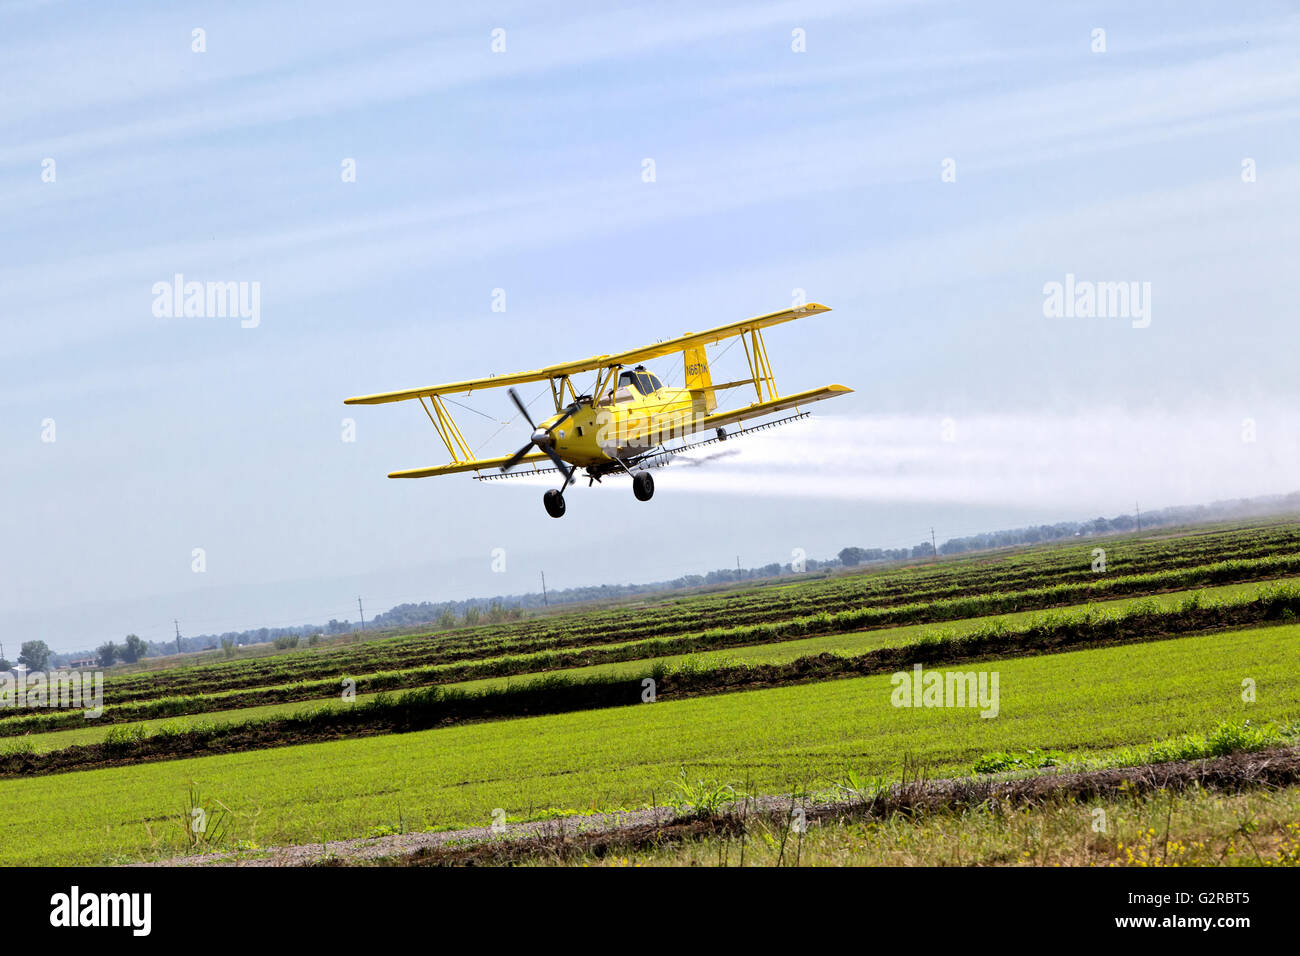 Turbo Prop Bi-Wing Crop Duster applying chemicals to rice paddy. - Stock Image